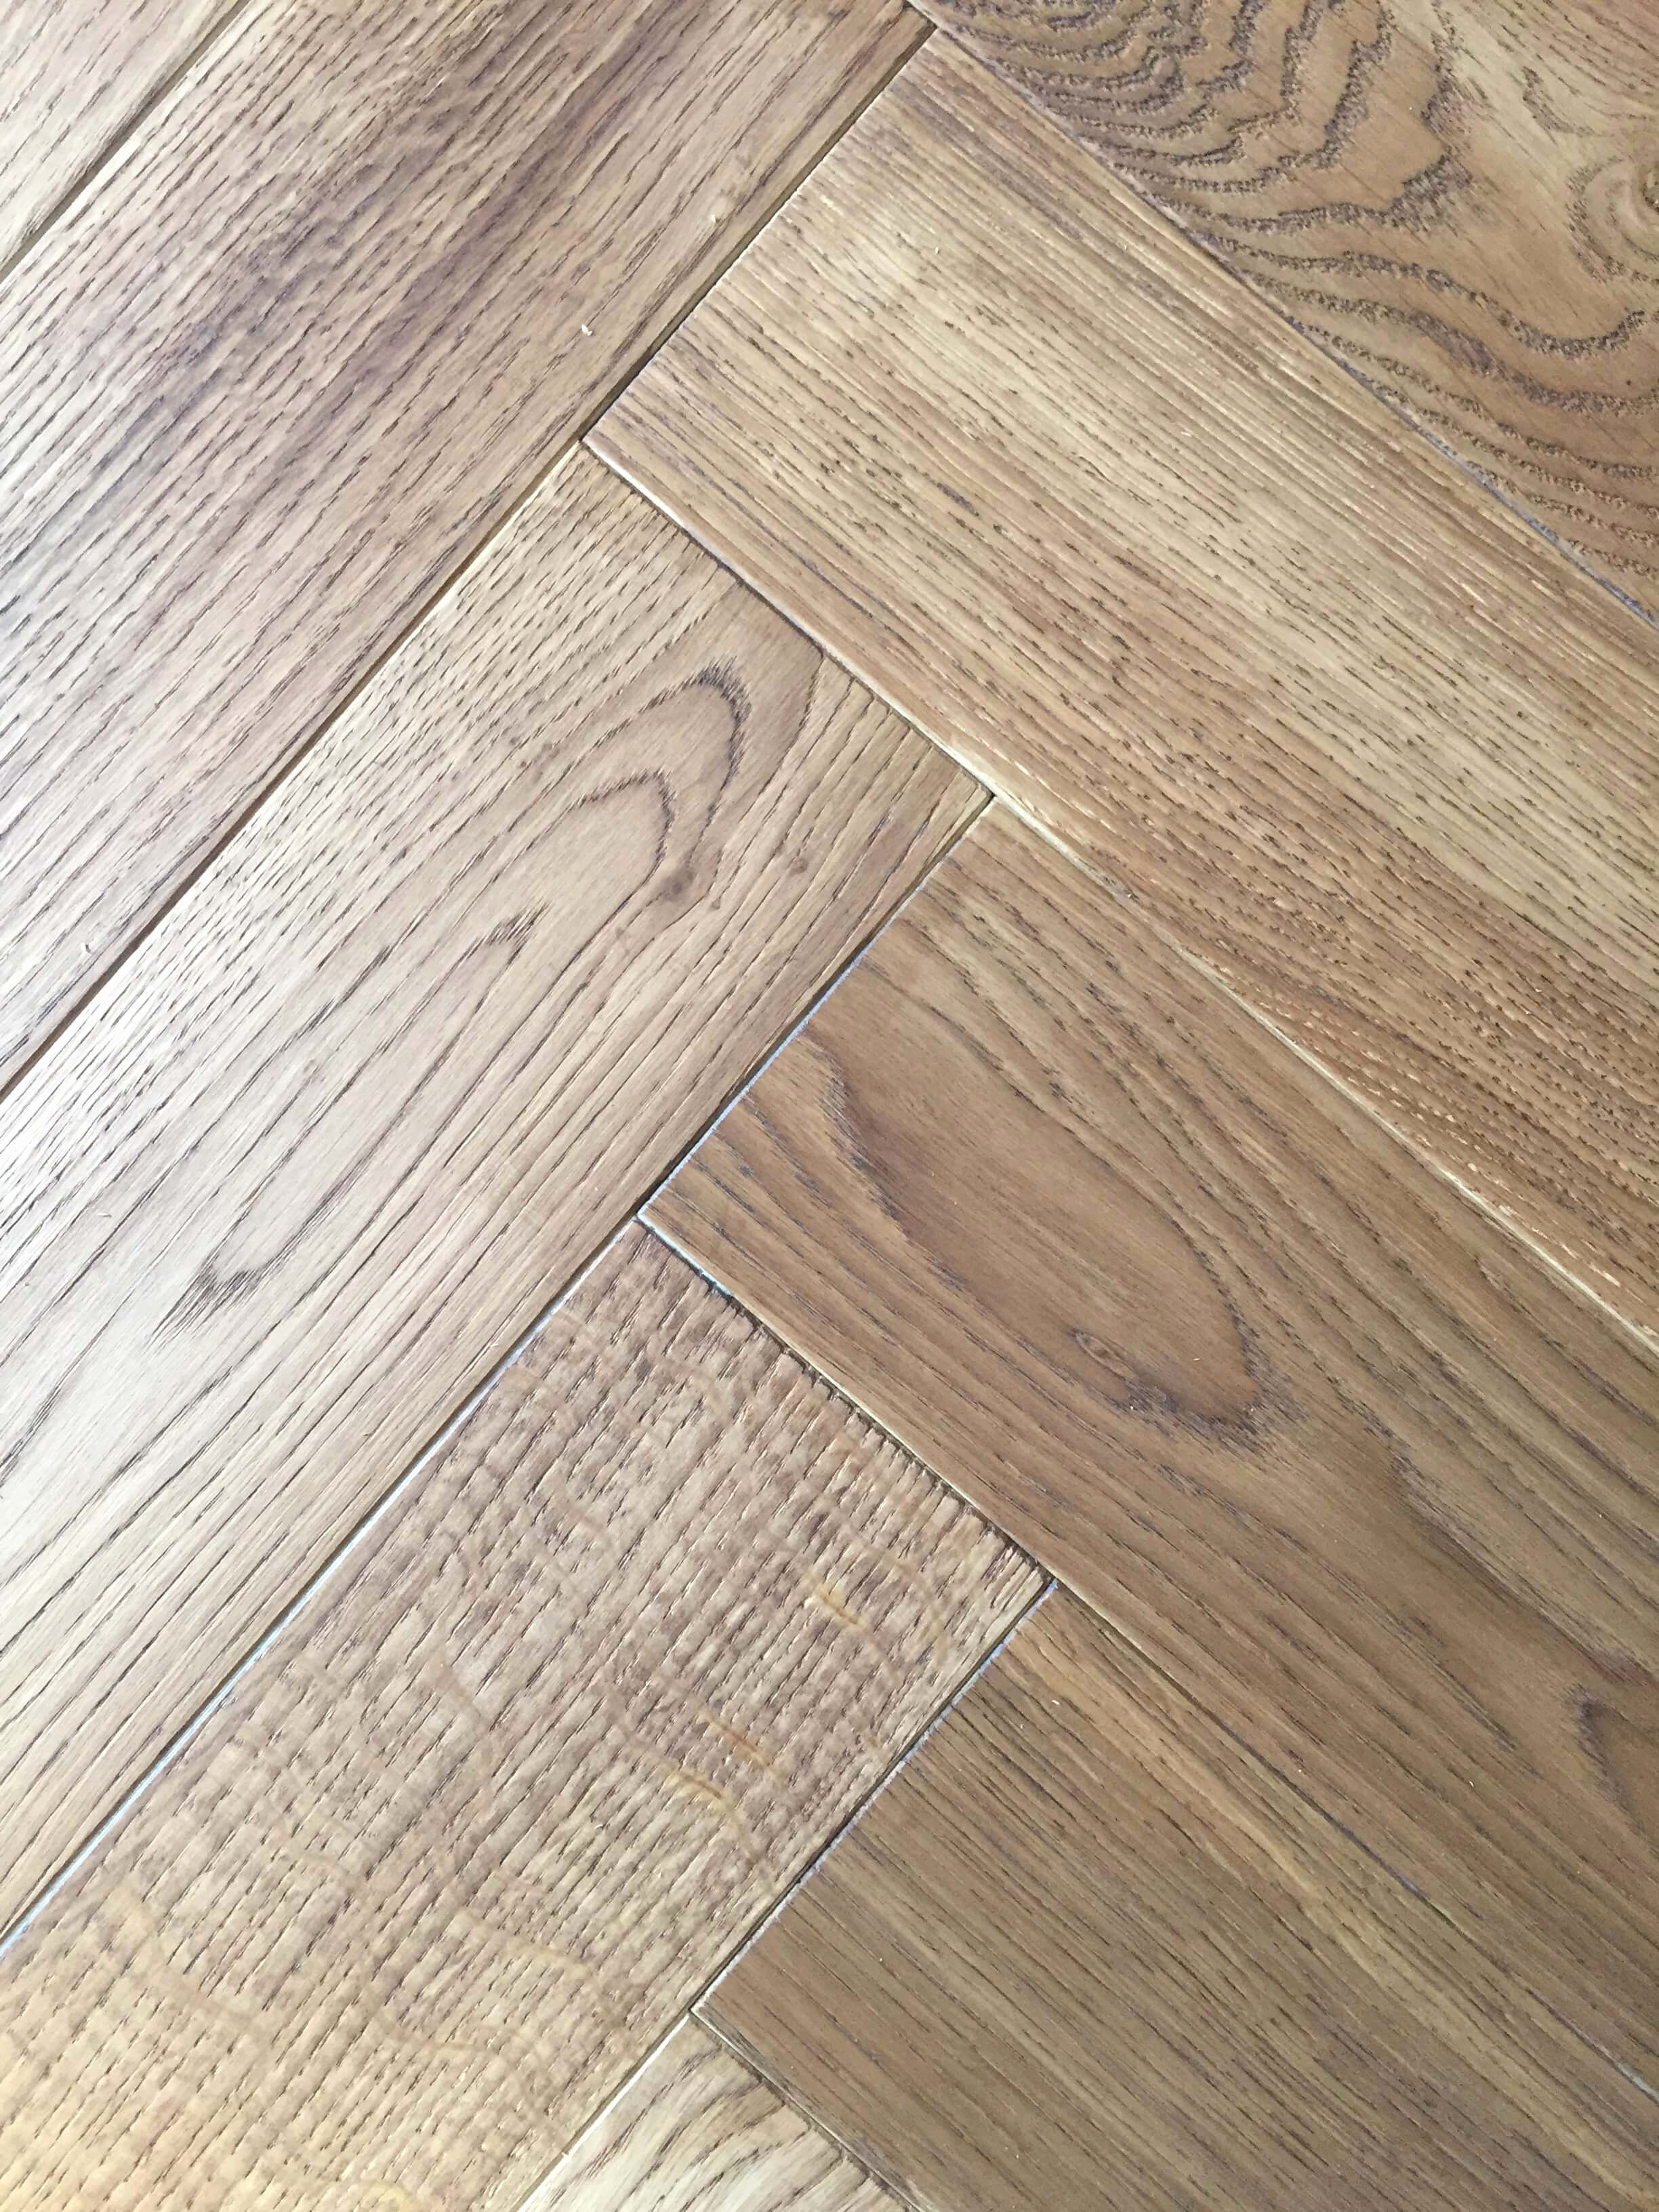 Amazon Hardwood Flooring Review Of Amazon Hardwood Flooring Picture Of St James Collection Laminate within Amazon Hardwood Flooring Elegant 30 Awesome Amazon forest Floor Animals with 960x540 Resolution